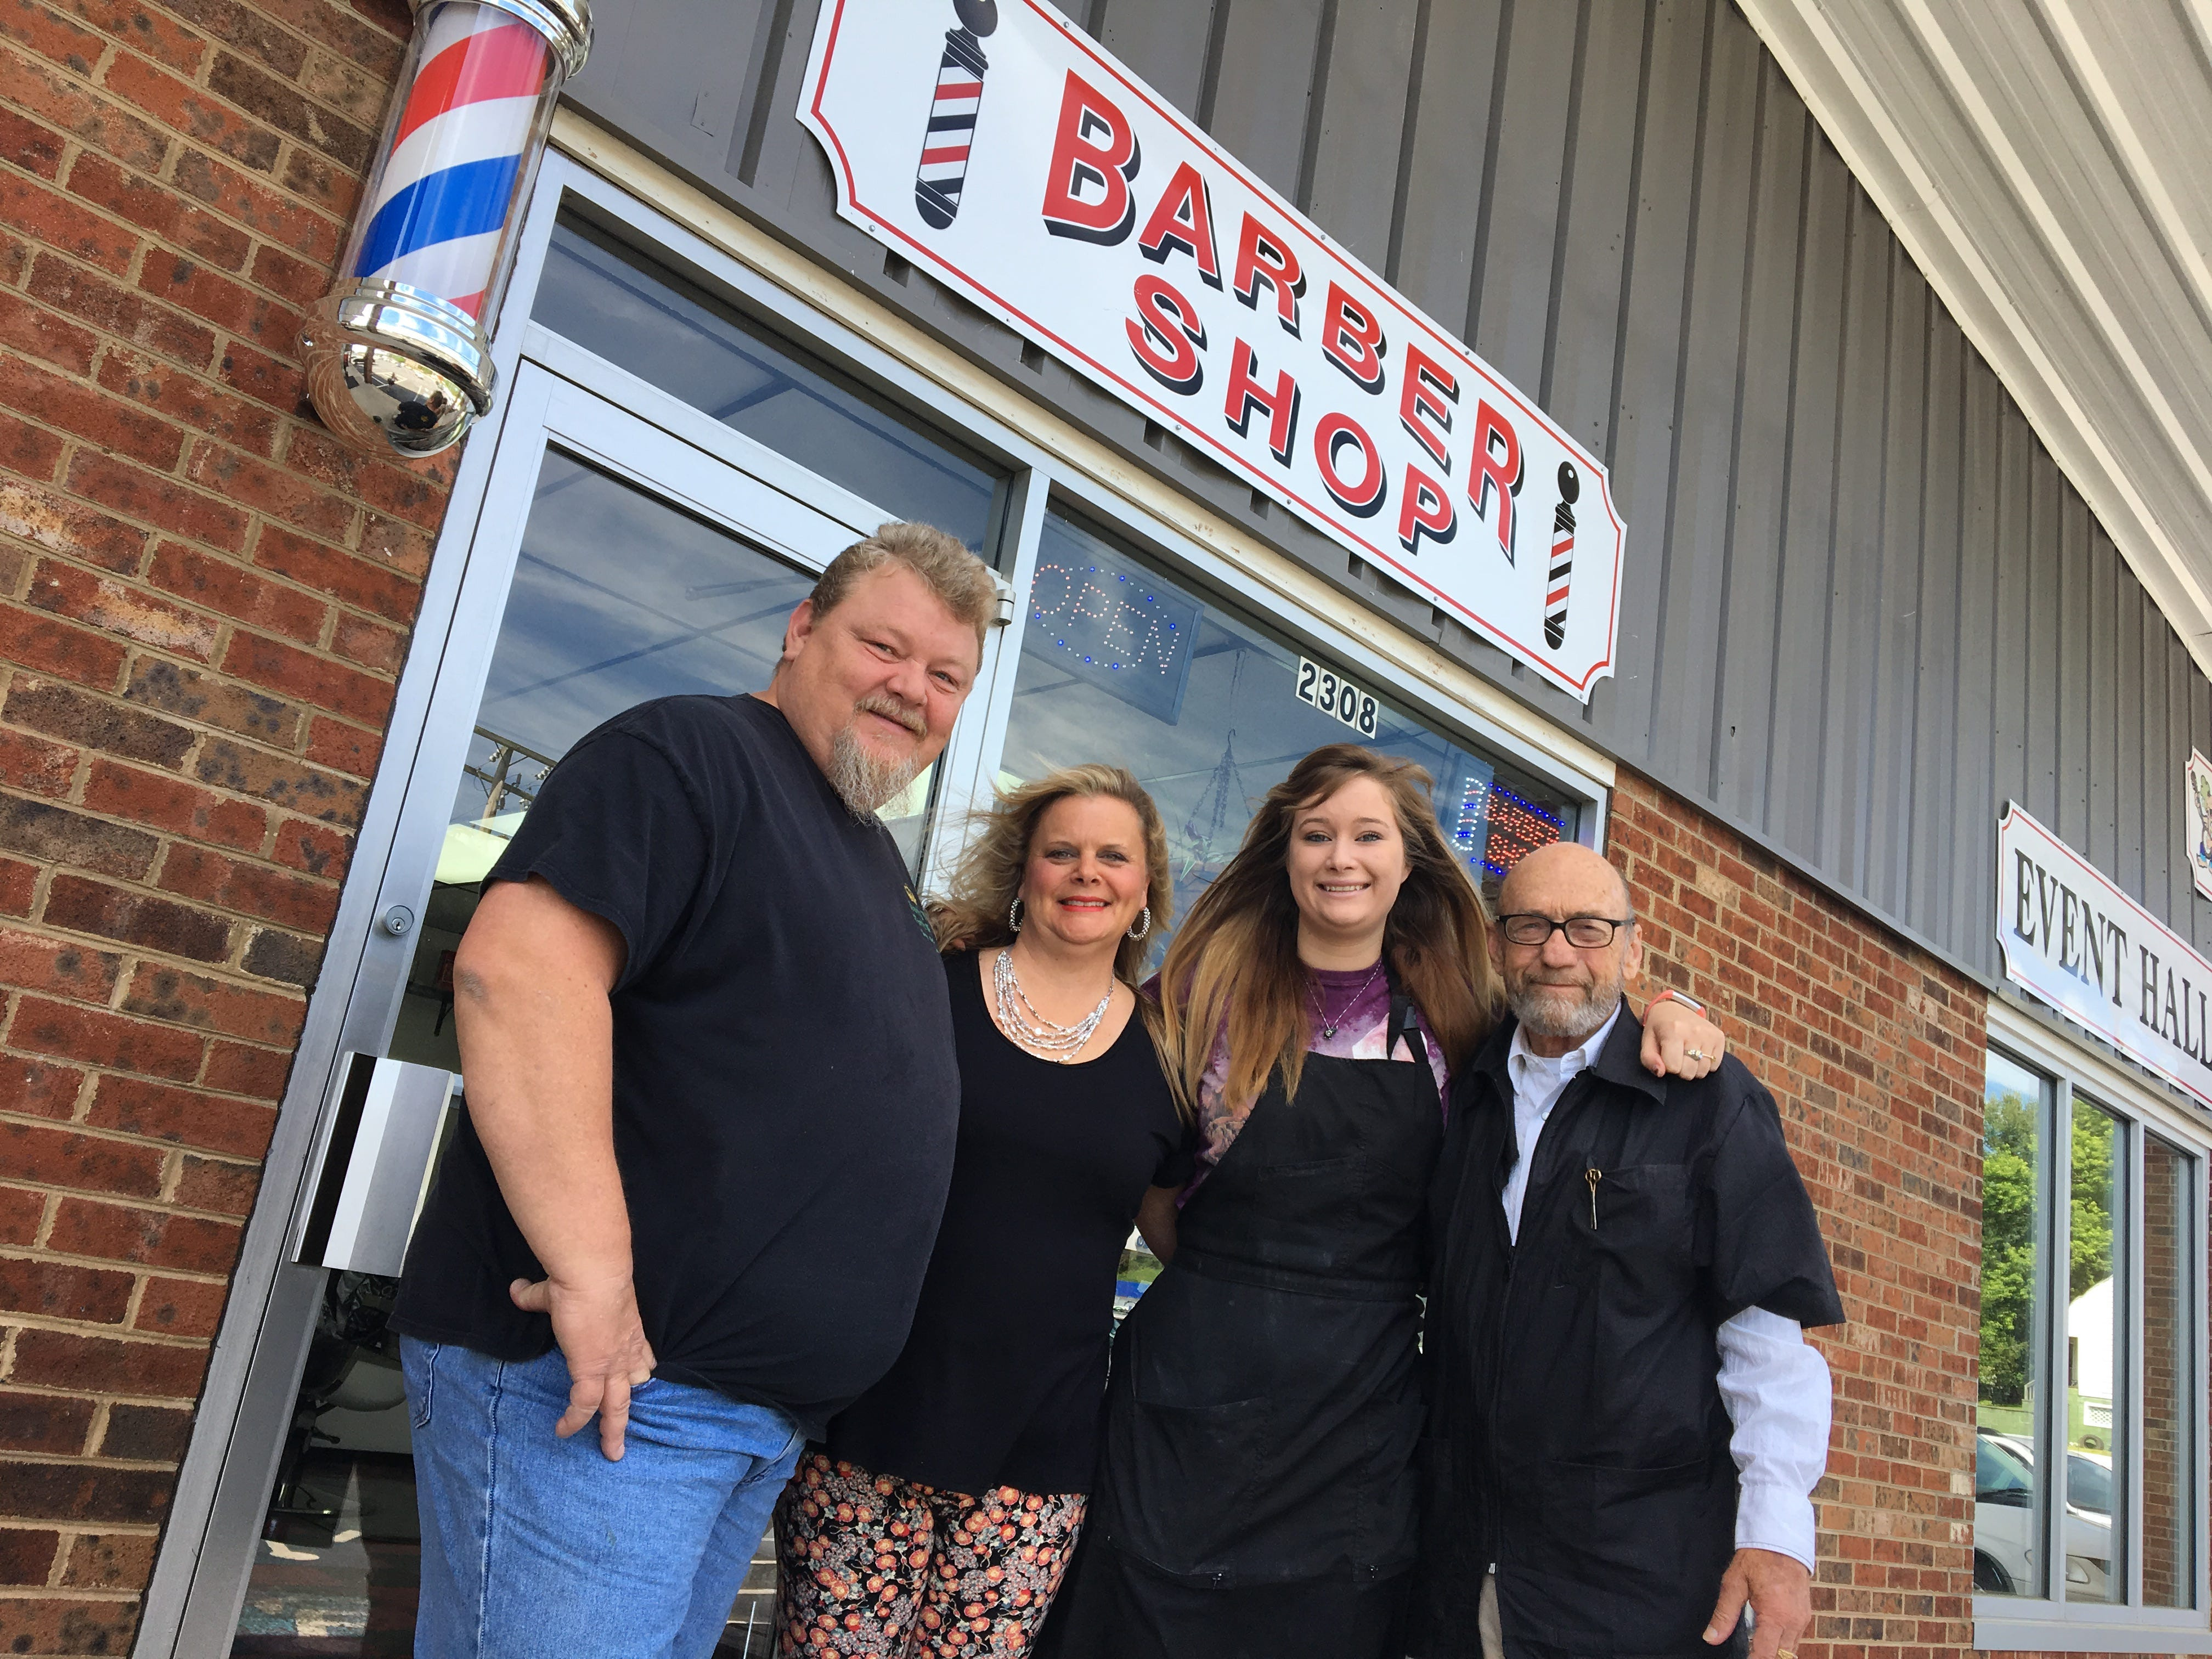 New west end barber shop; ice cream at Mt. Crawford; portrait studio opens — the buzz